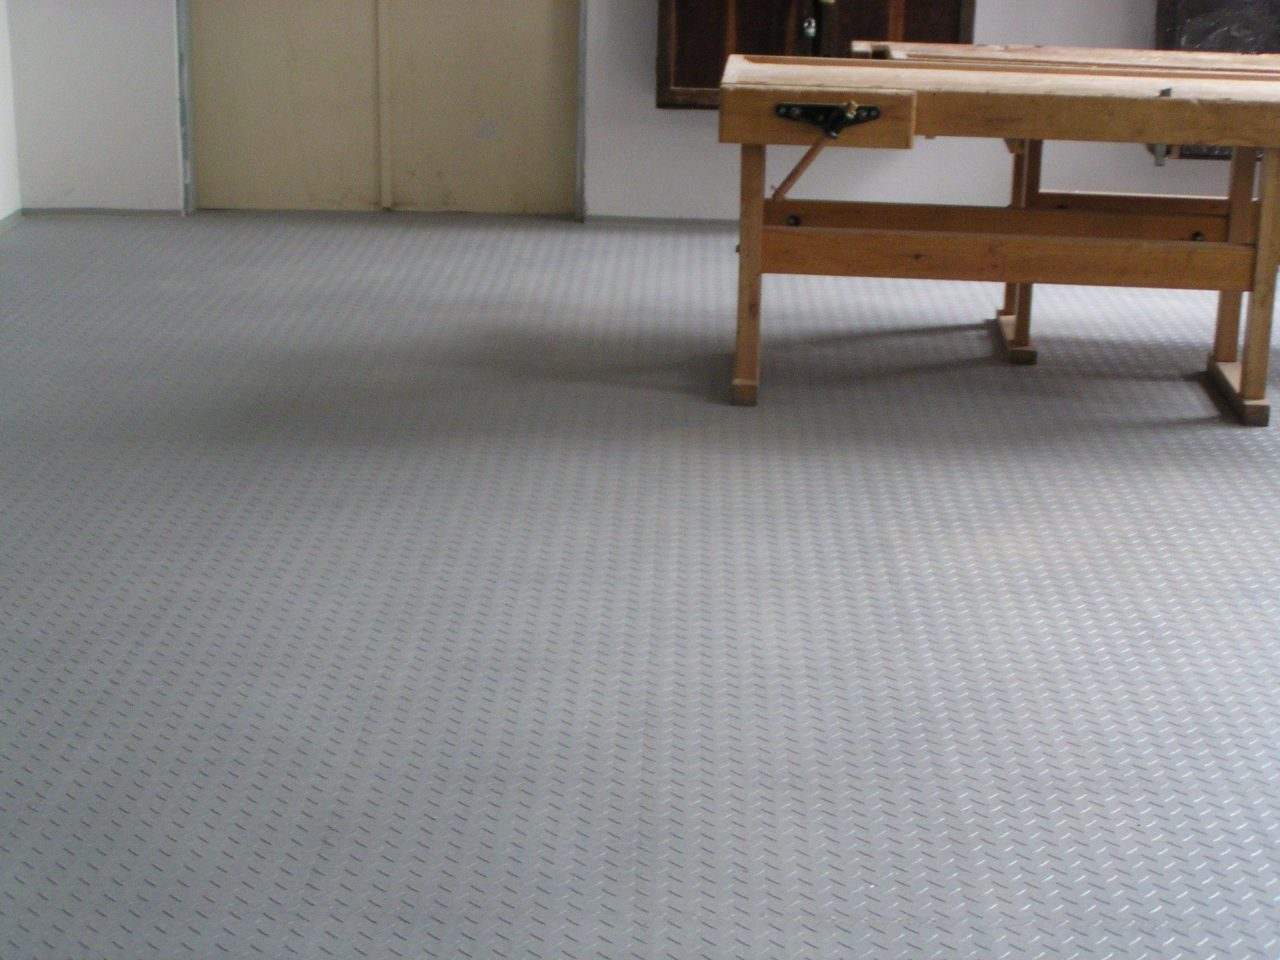 office tile flooring. A Good Design For The Commercial Floorings Should Rather Be Conservative And Emphasize Small Features Only Sporadically. Large Patters In Office Spaces Tile Flooring